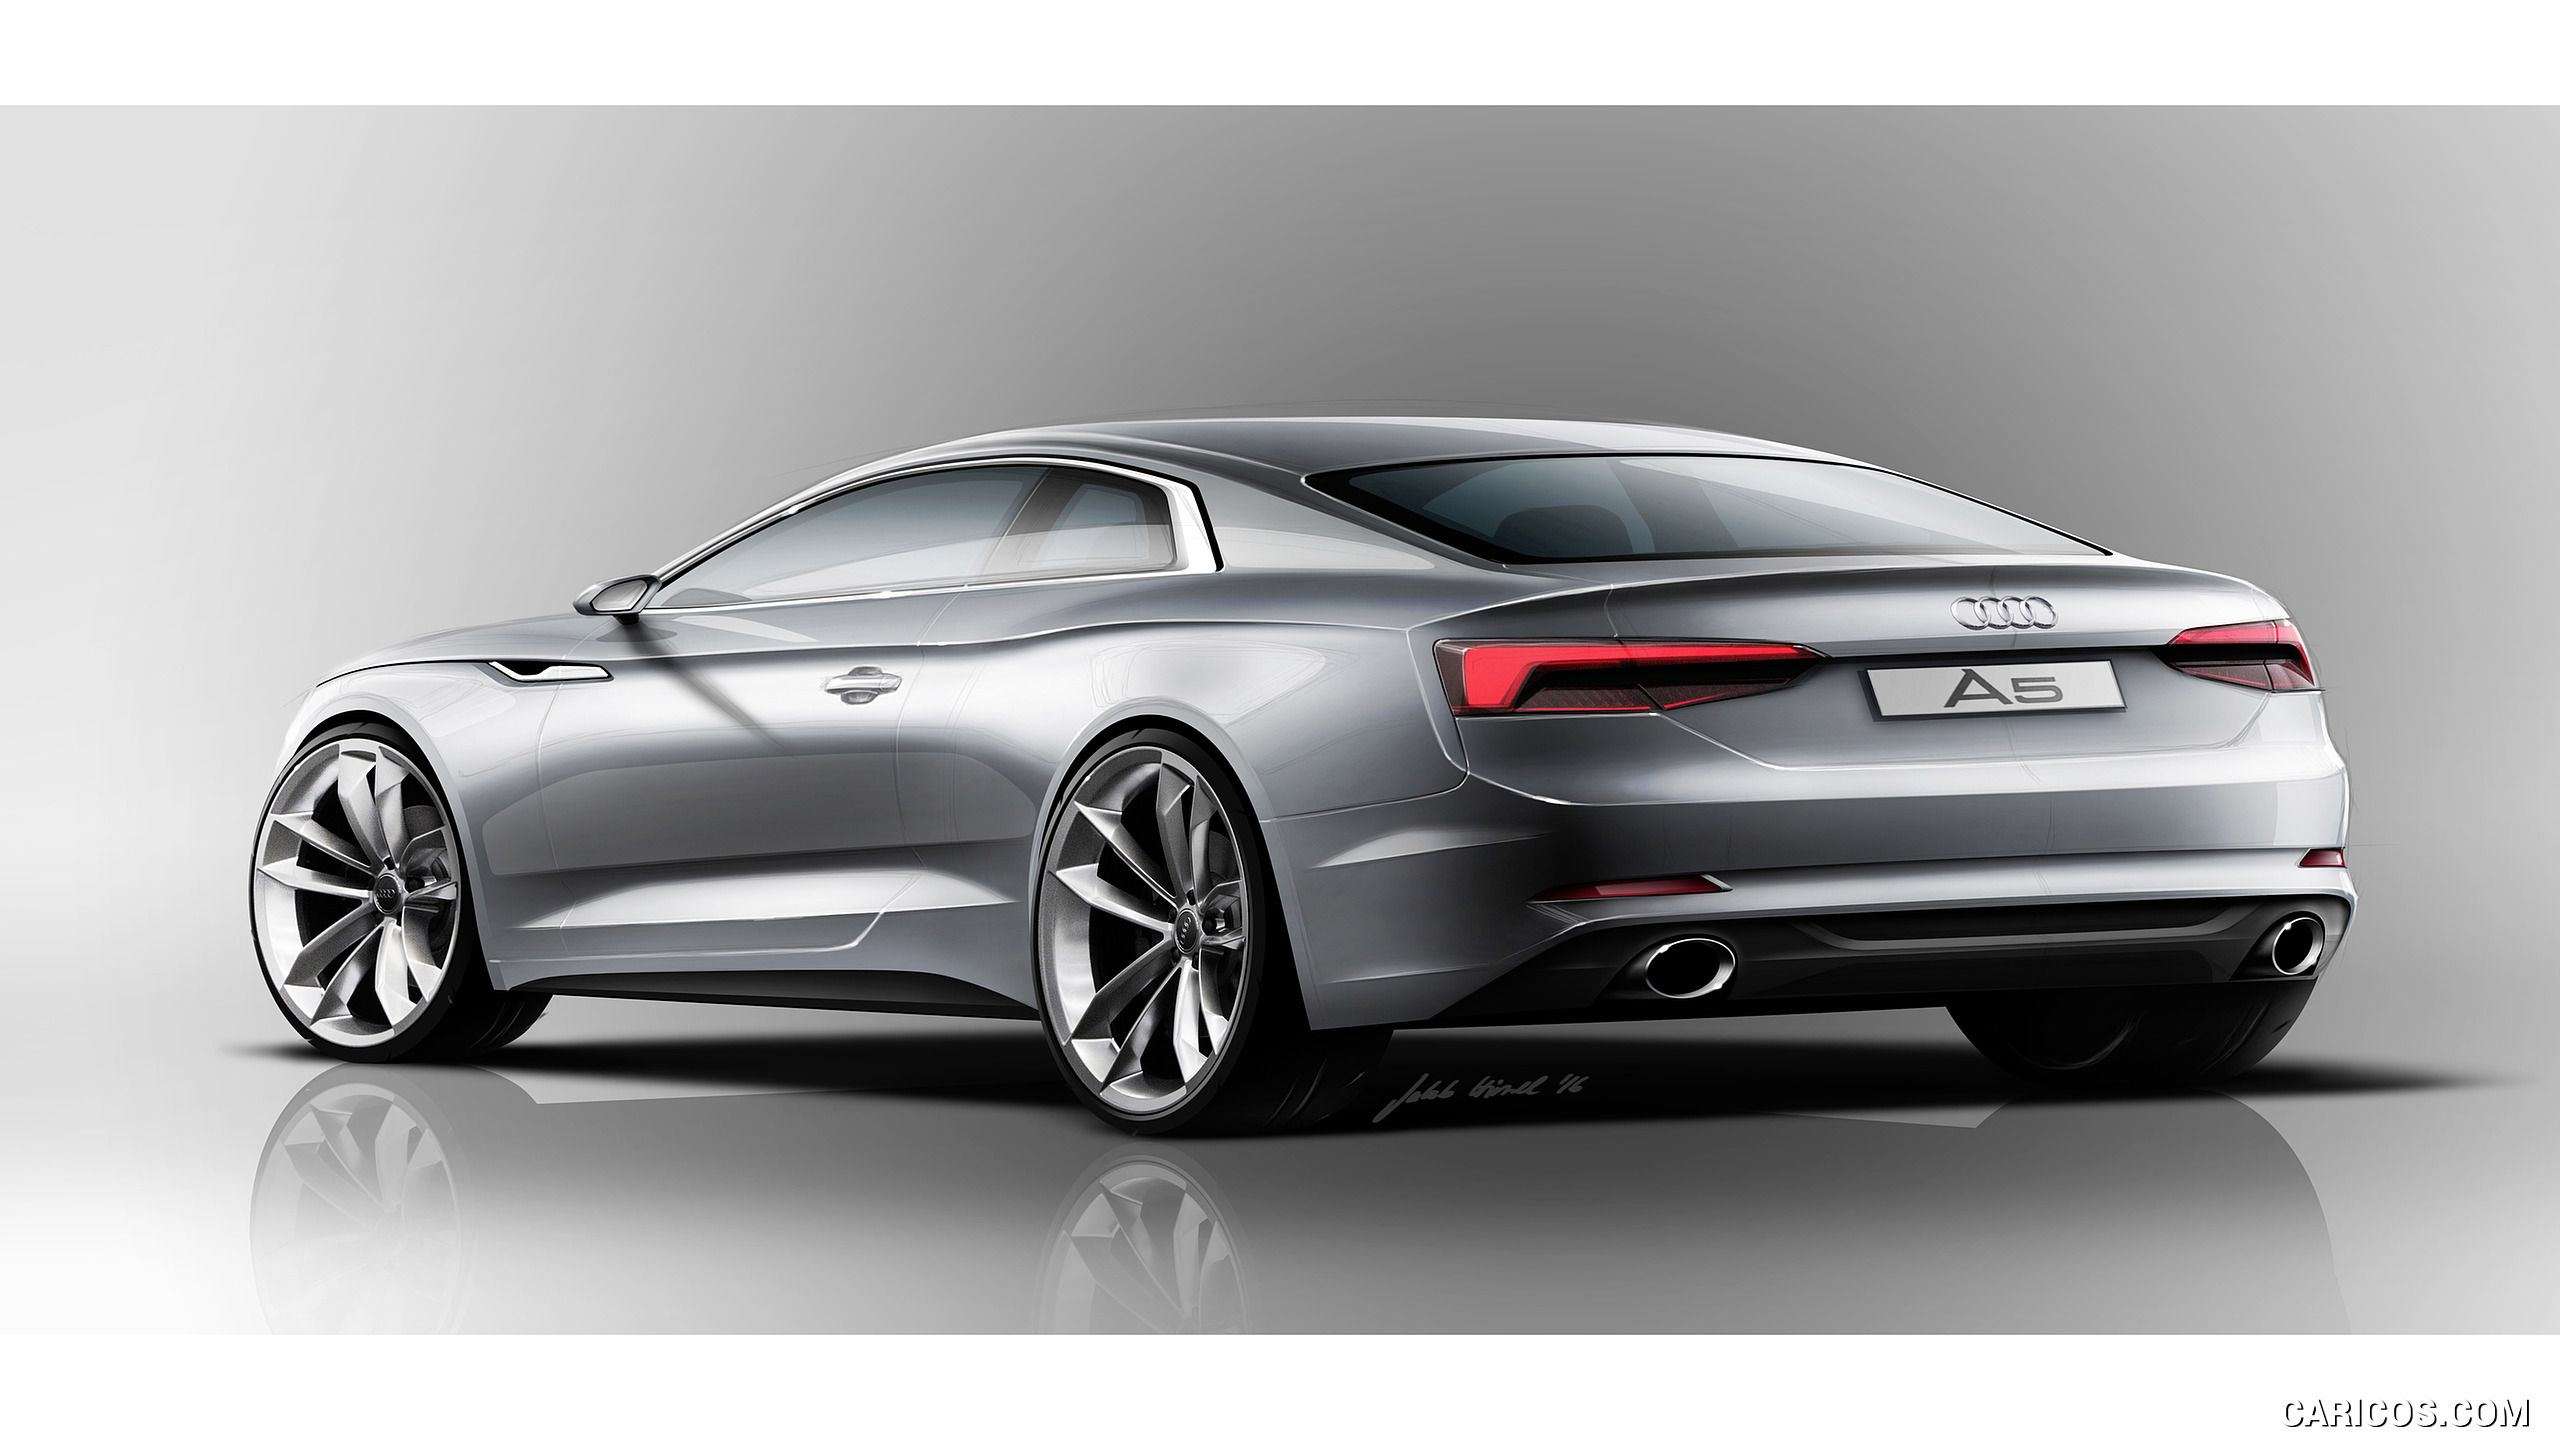 2018 audi a5 coup wallpaper transportation design sketches and renderings pinterest audi a5. Black Bedroom Furniture Sets. Home Design Ideas